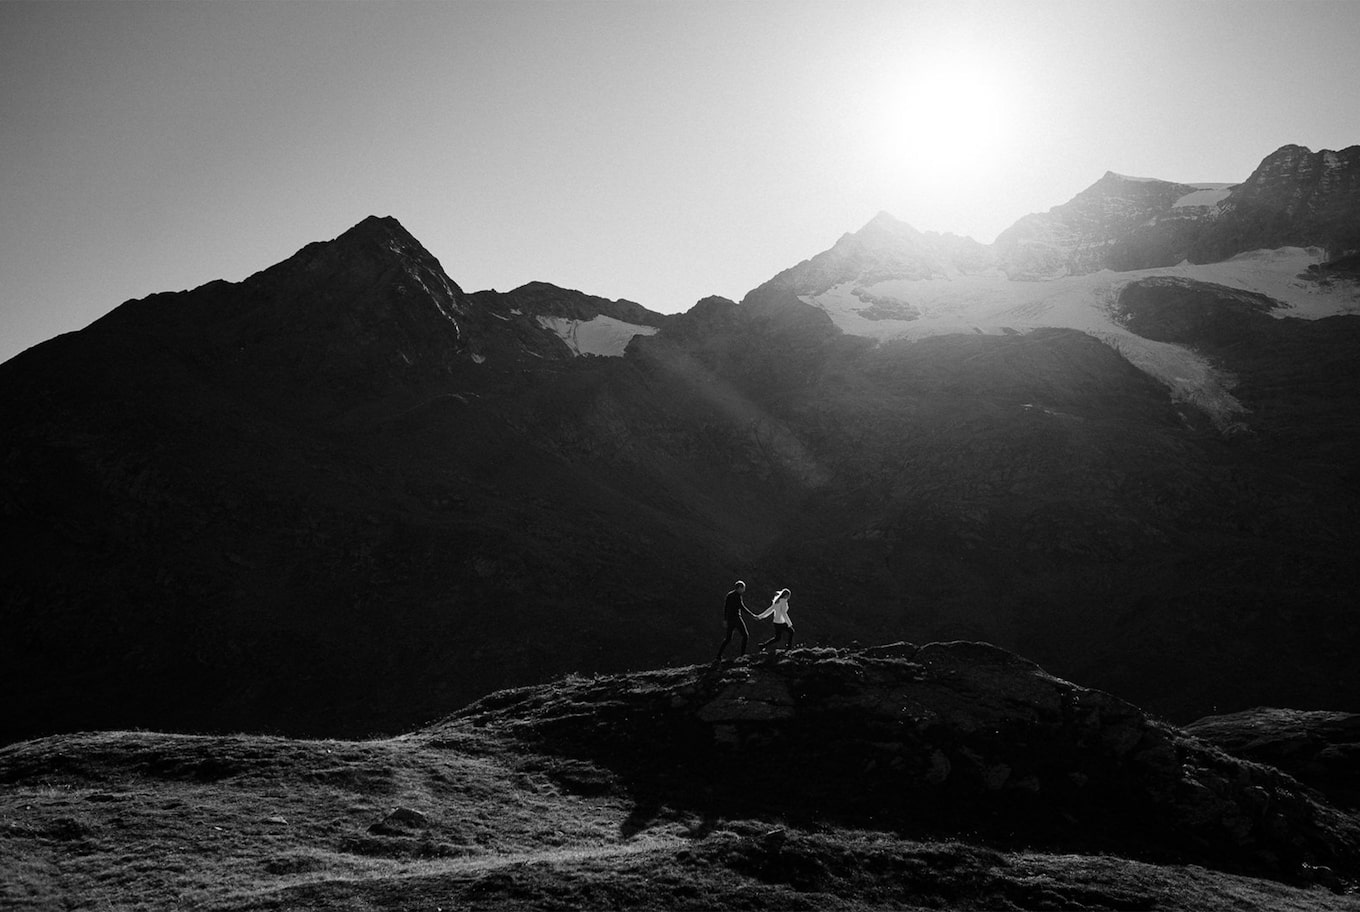 yannick zurfluh sony alpha 9 couple eloping in the mountains